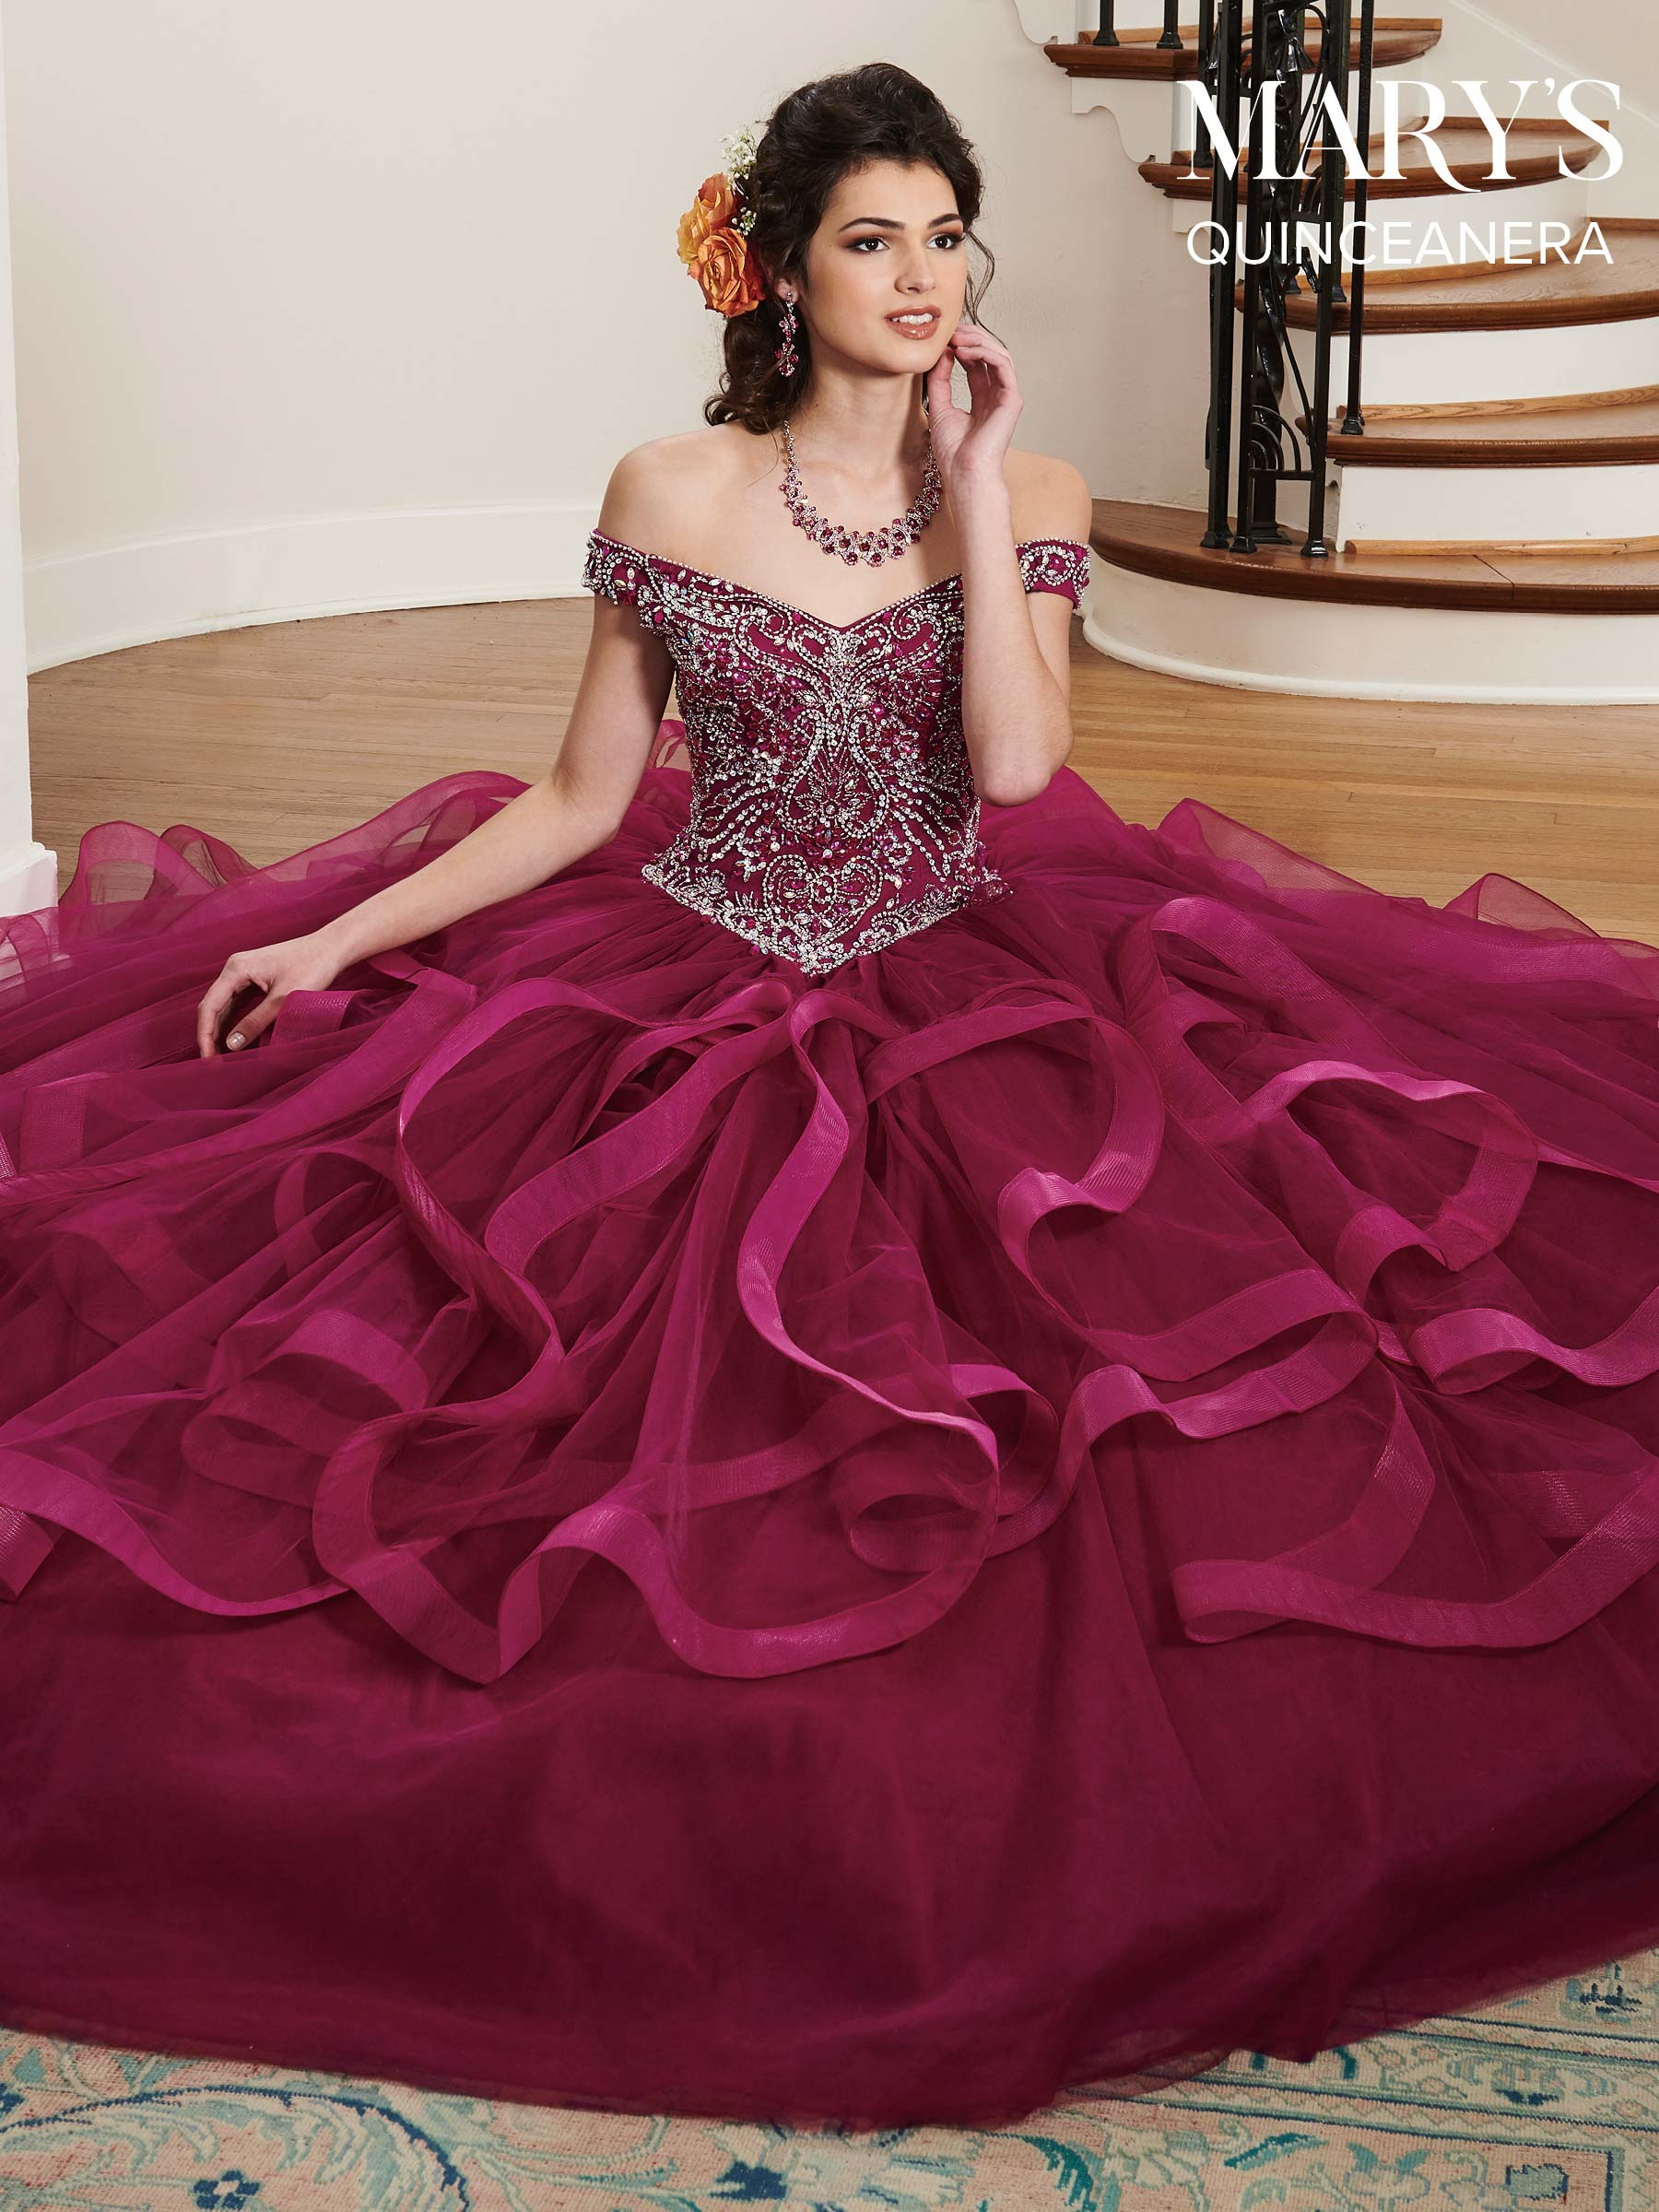 Marys Quinceanera Dresses | Mary's Quinceanera | Style - MQ2027